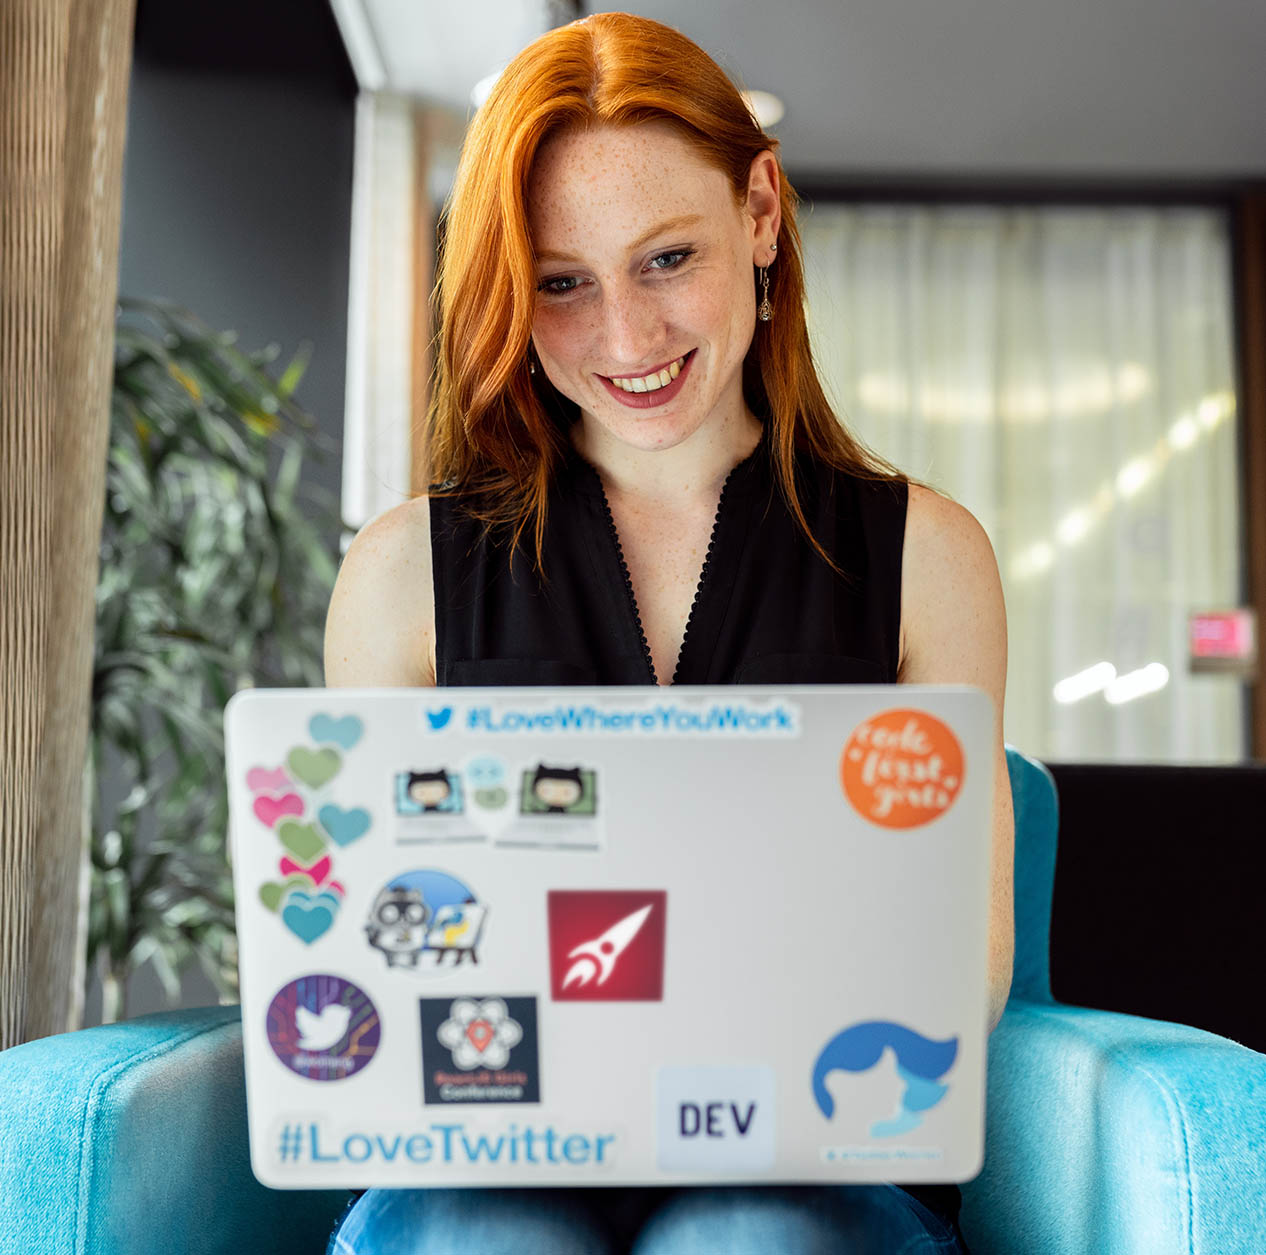 woman ginger on blue chair at laptop